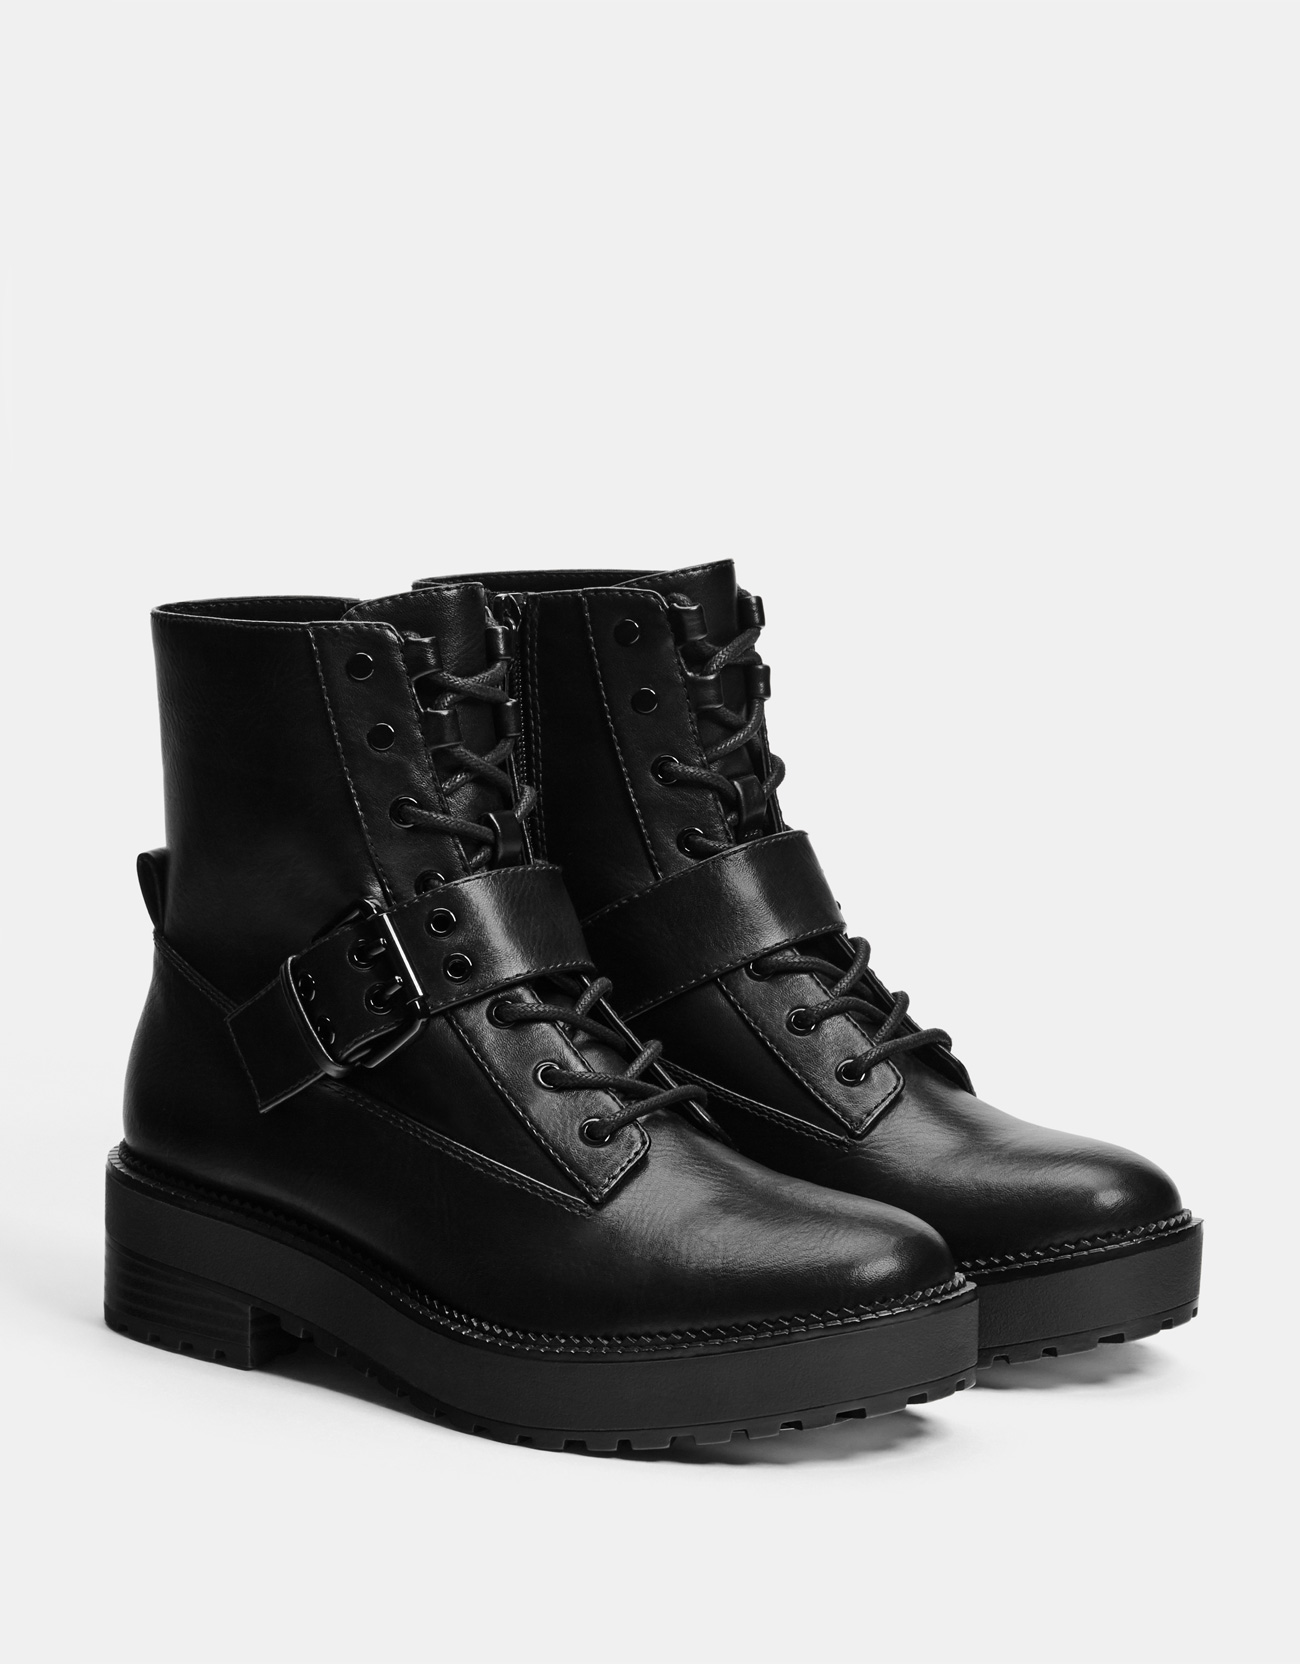 Flat ankle boots with buckled strap